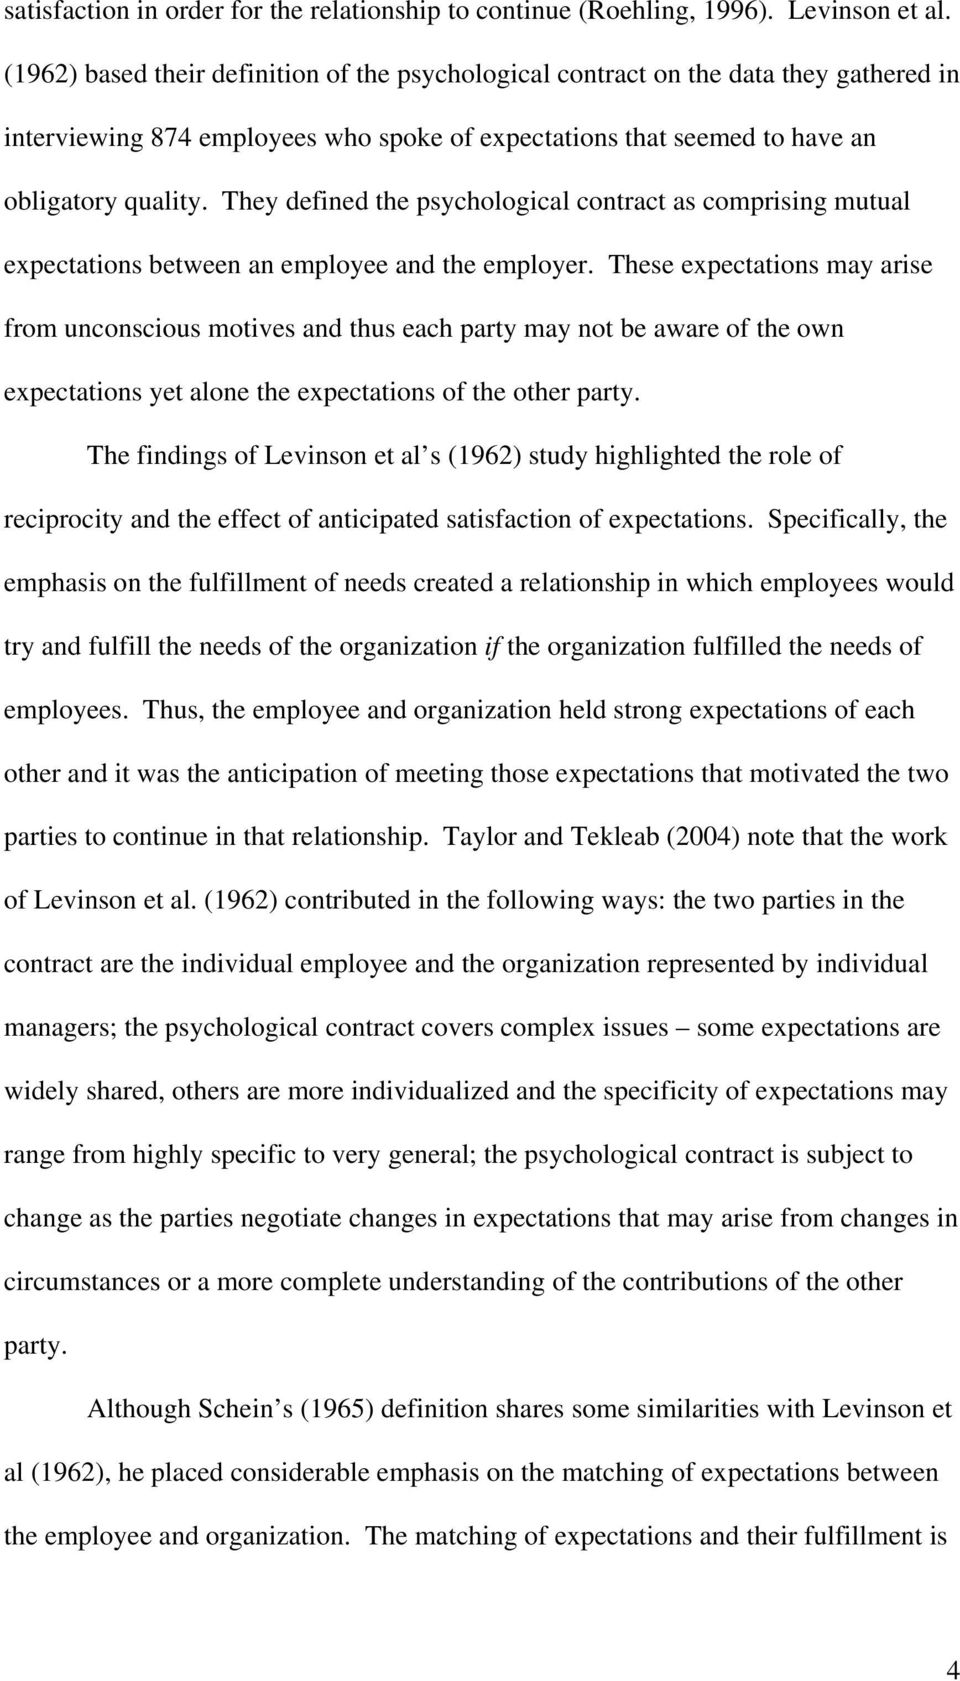 They defined the psychological contract as comprising mutual expectations between an employee and the employer.